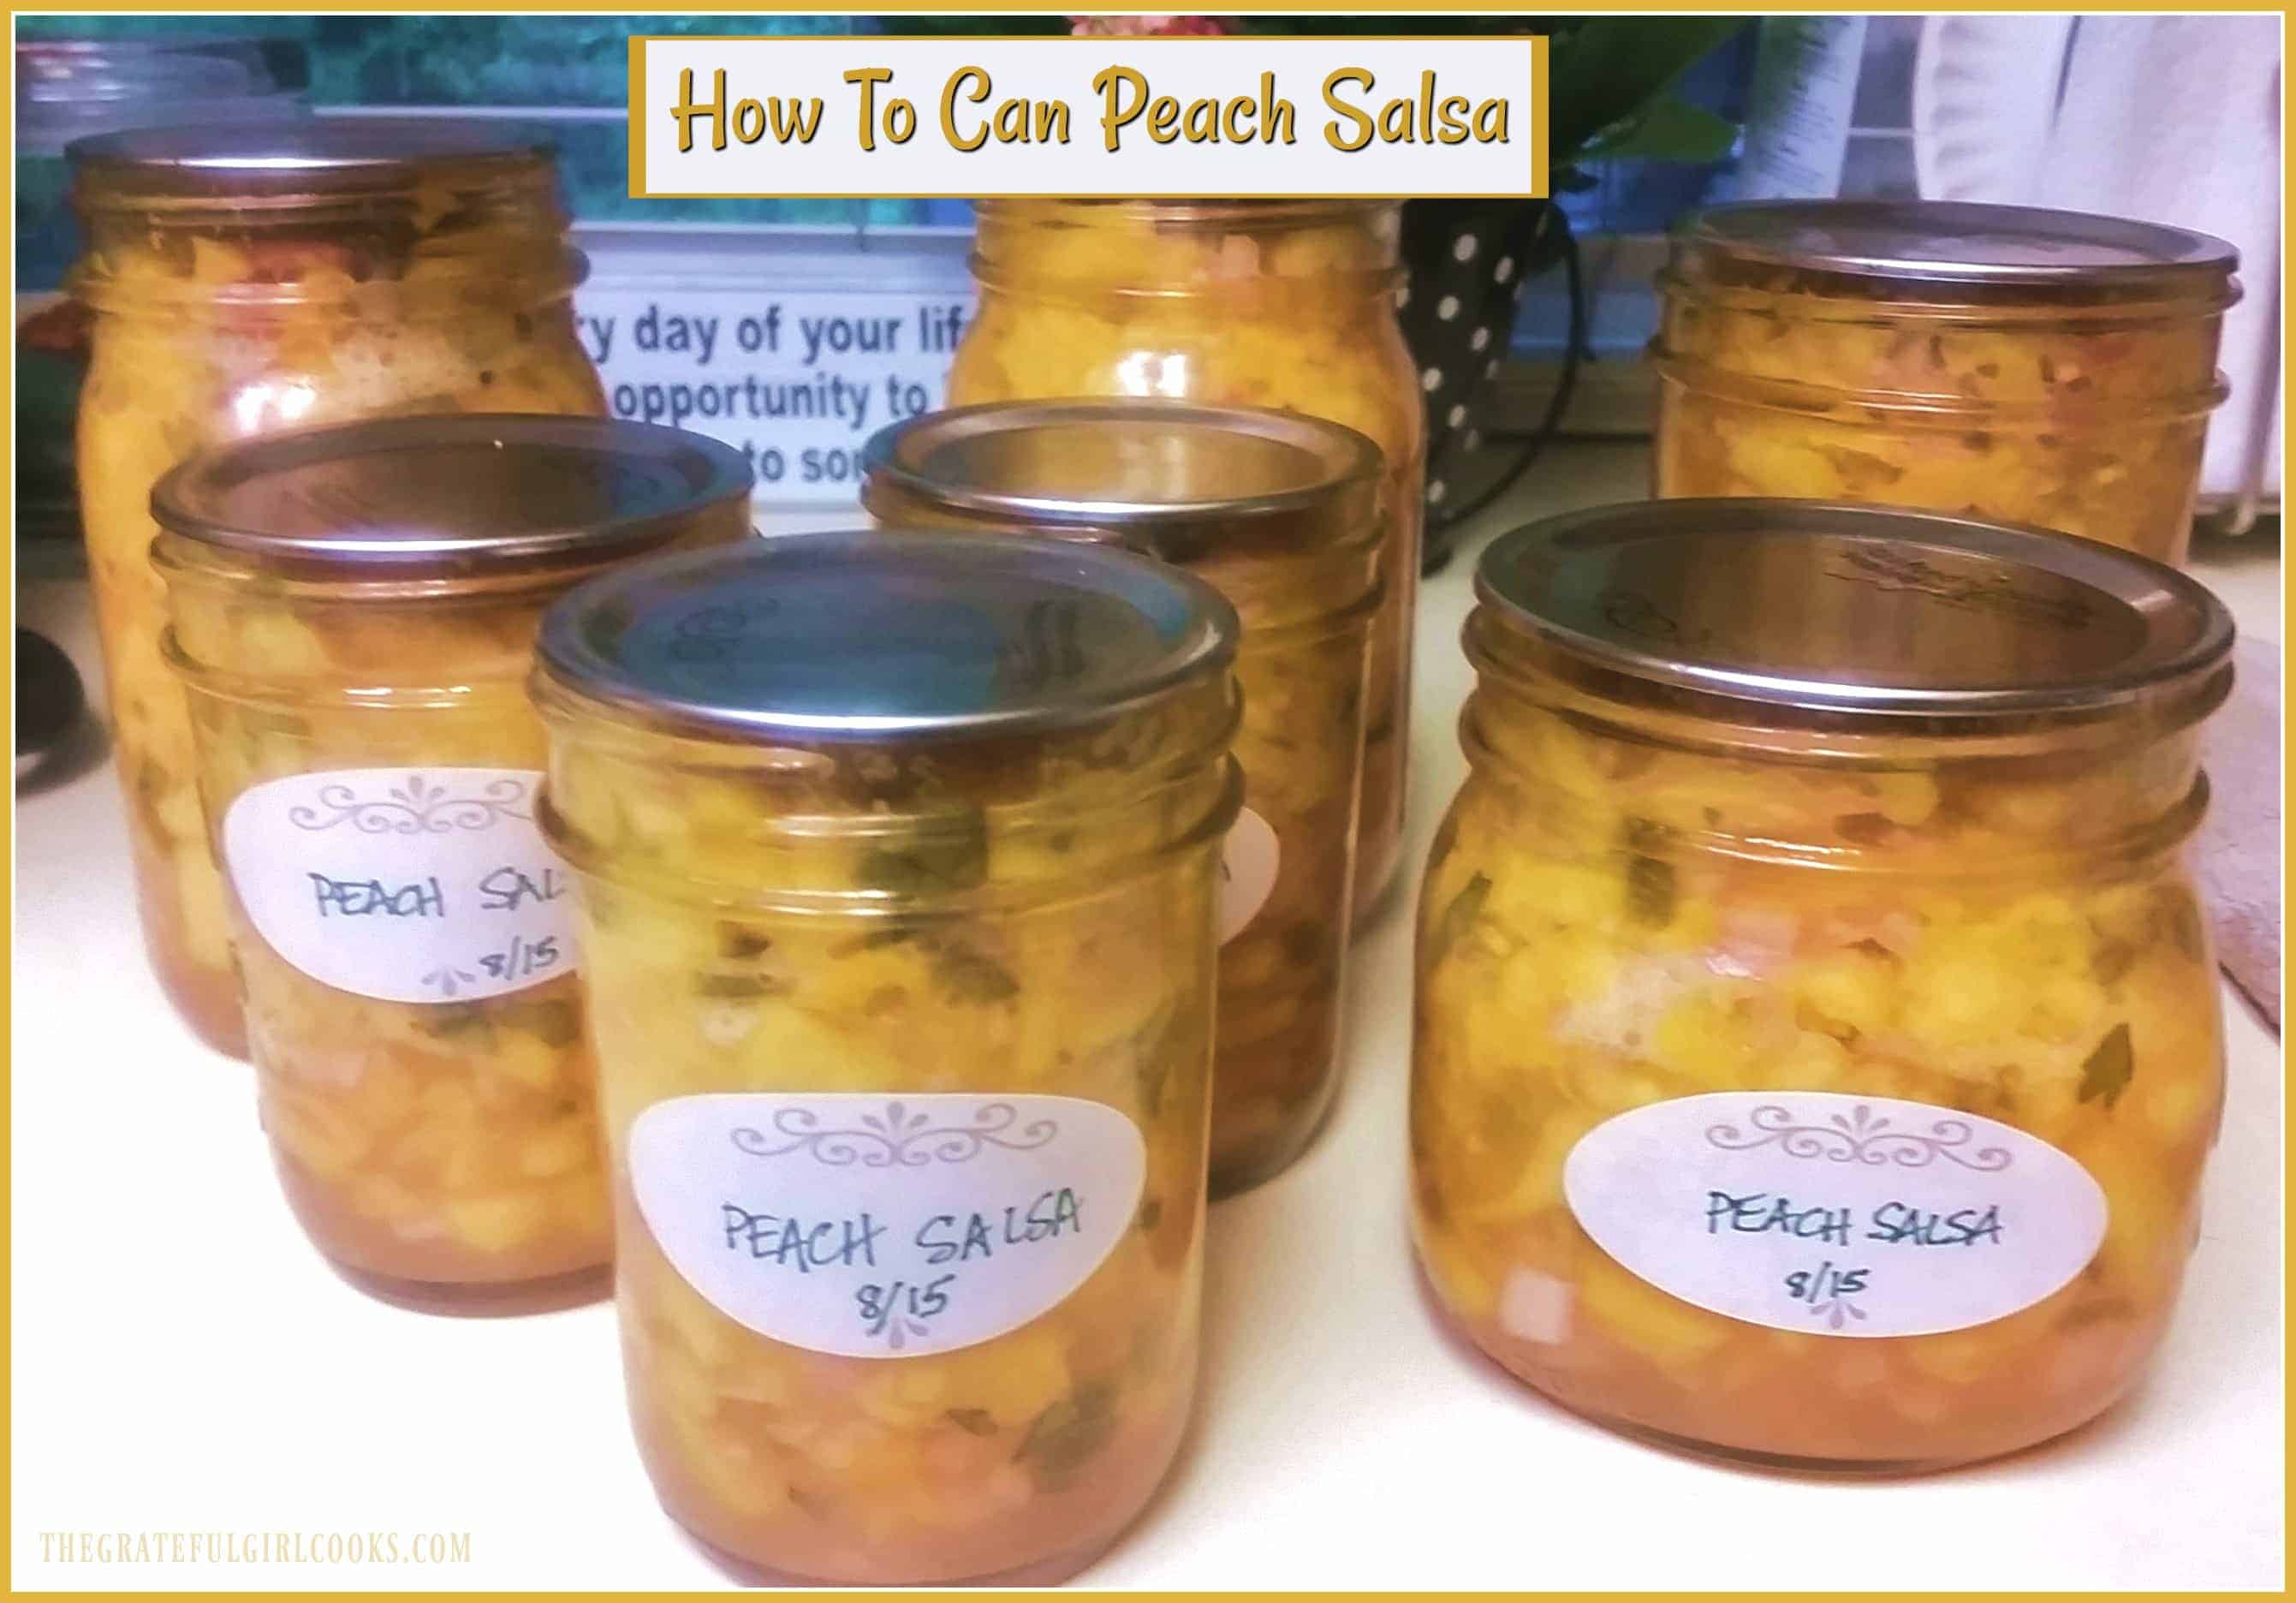 How To Can Peach Salsa / The Grateful Girl Cooks!